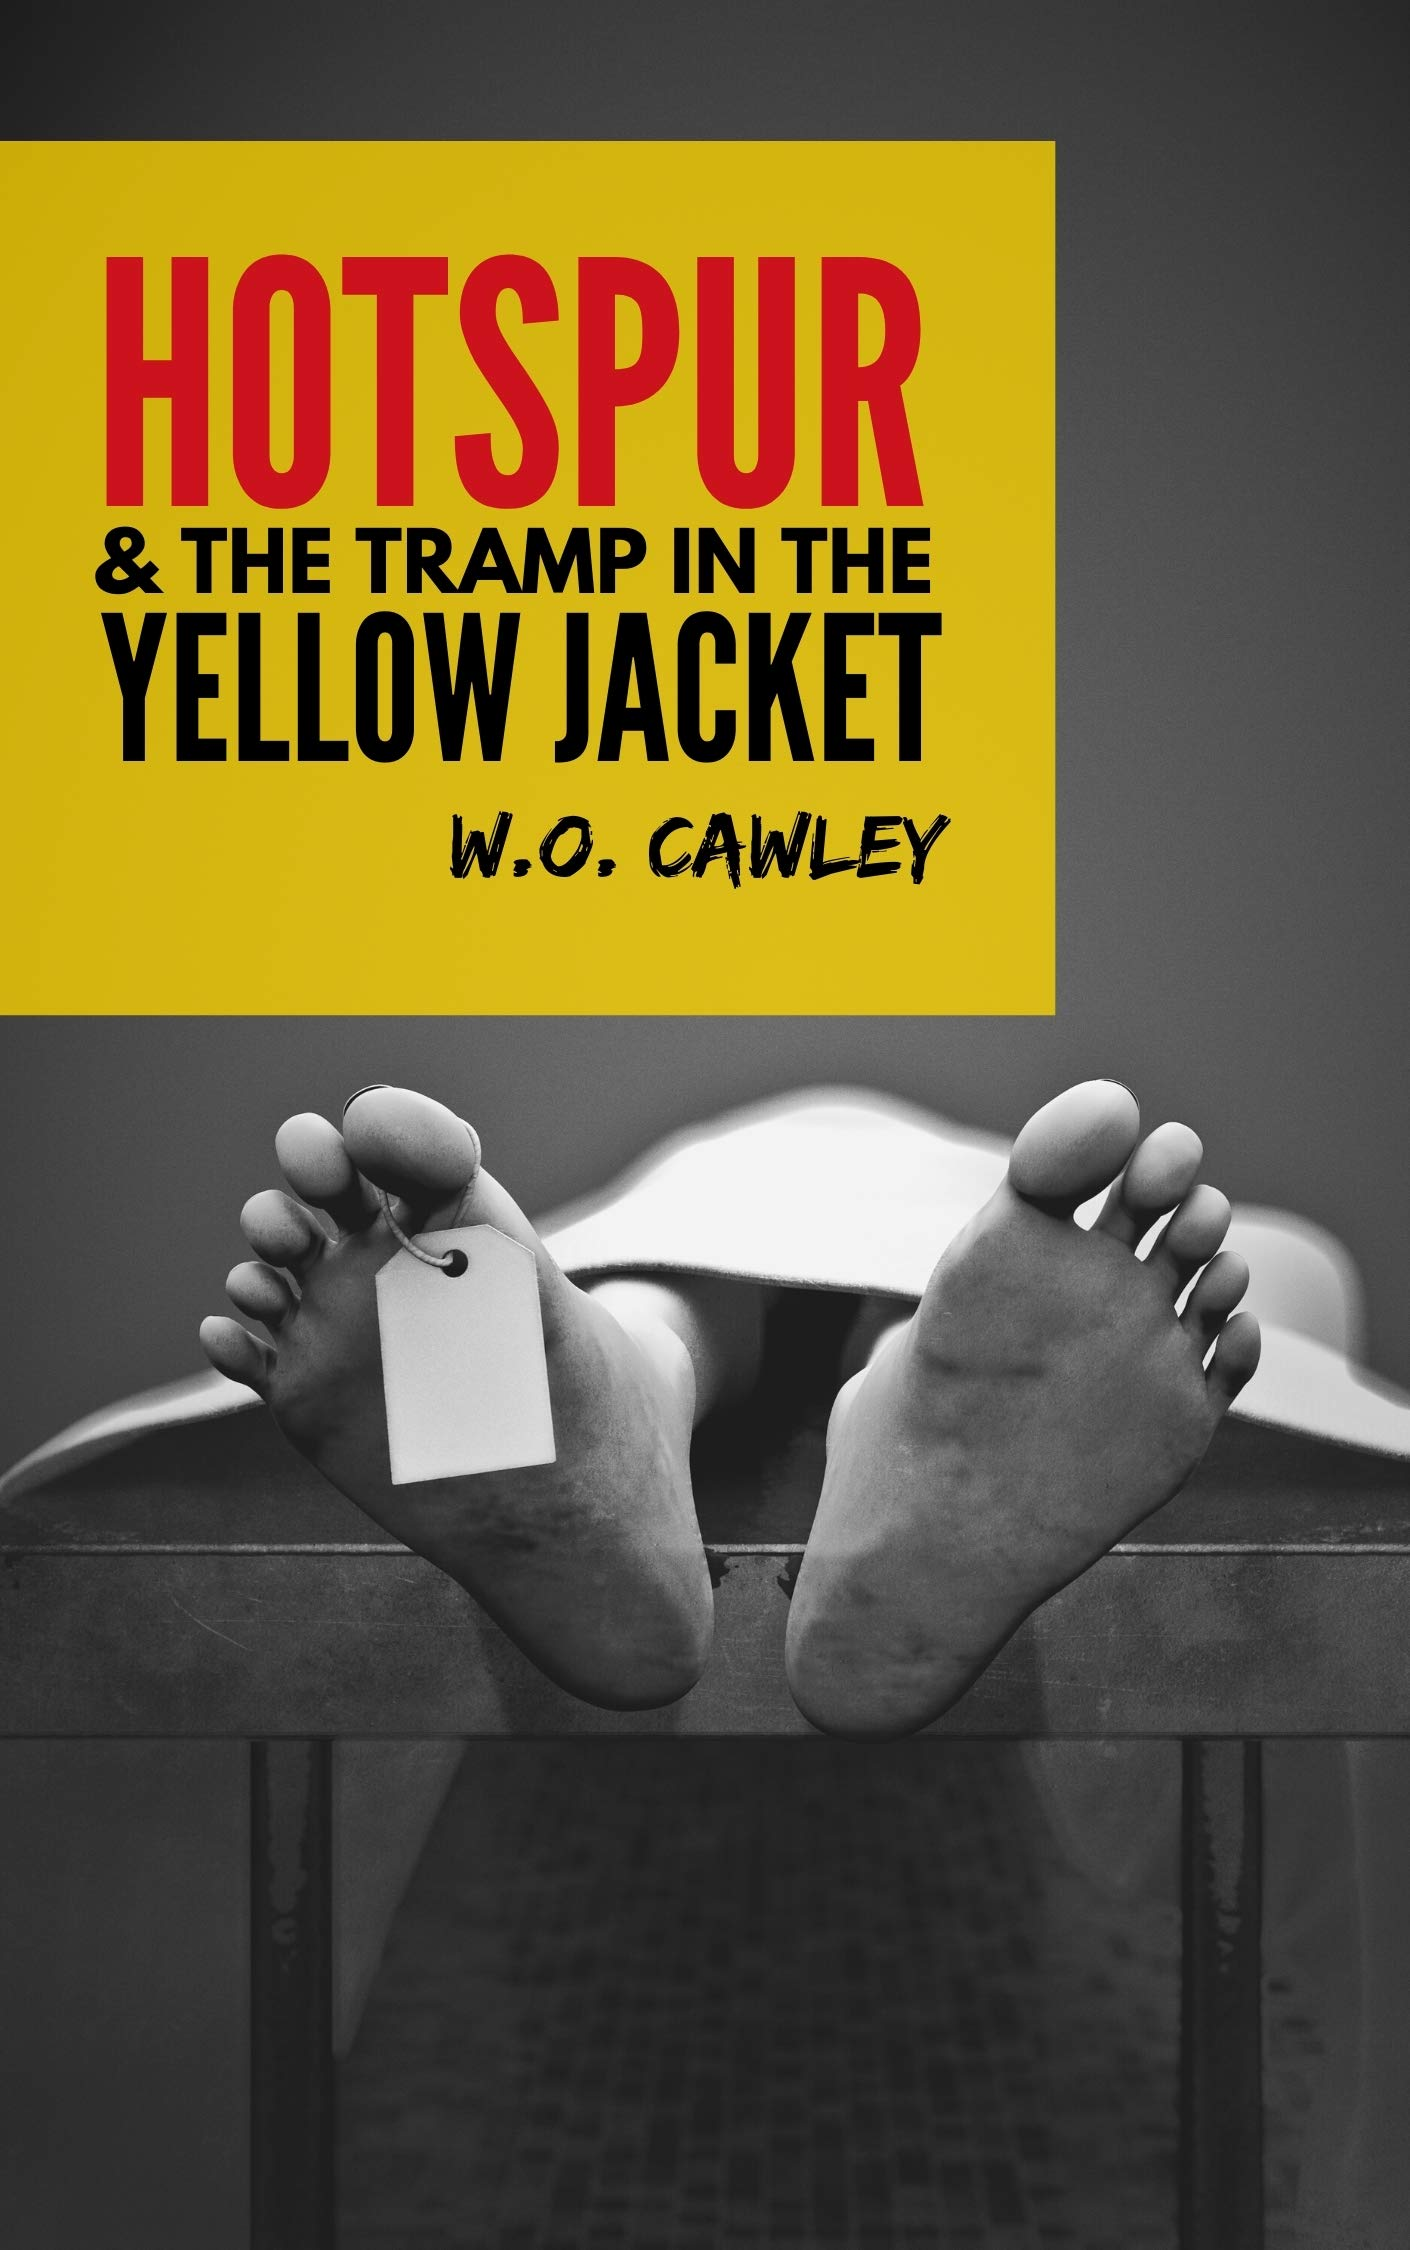 Hotspur and the Tramp in the Yellow Jacket W.O. Cawley